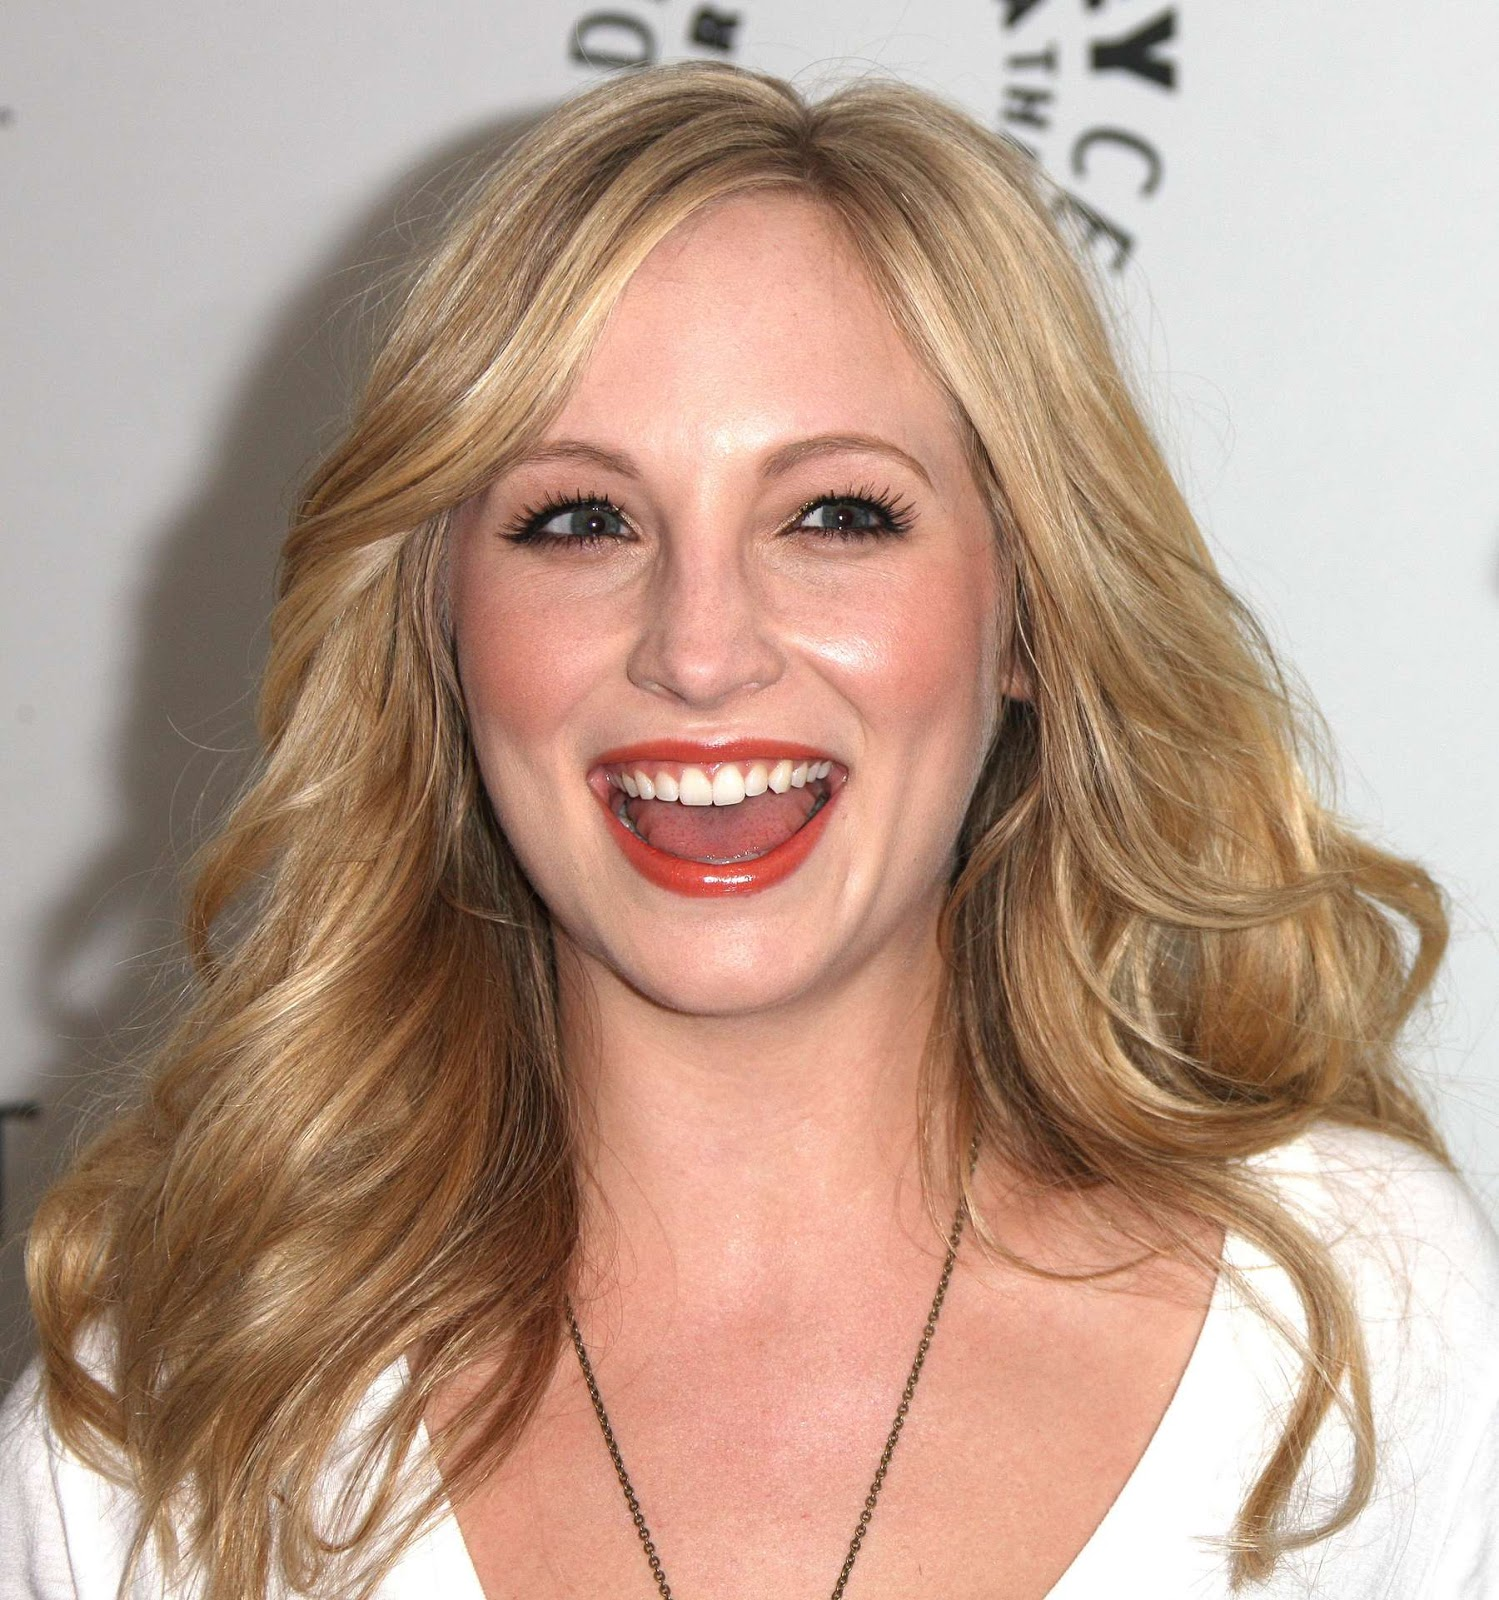 Candice Accola Hd Wallpapers  Wall Pc-8820